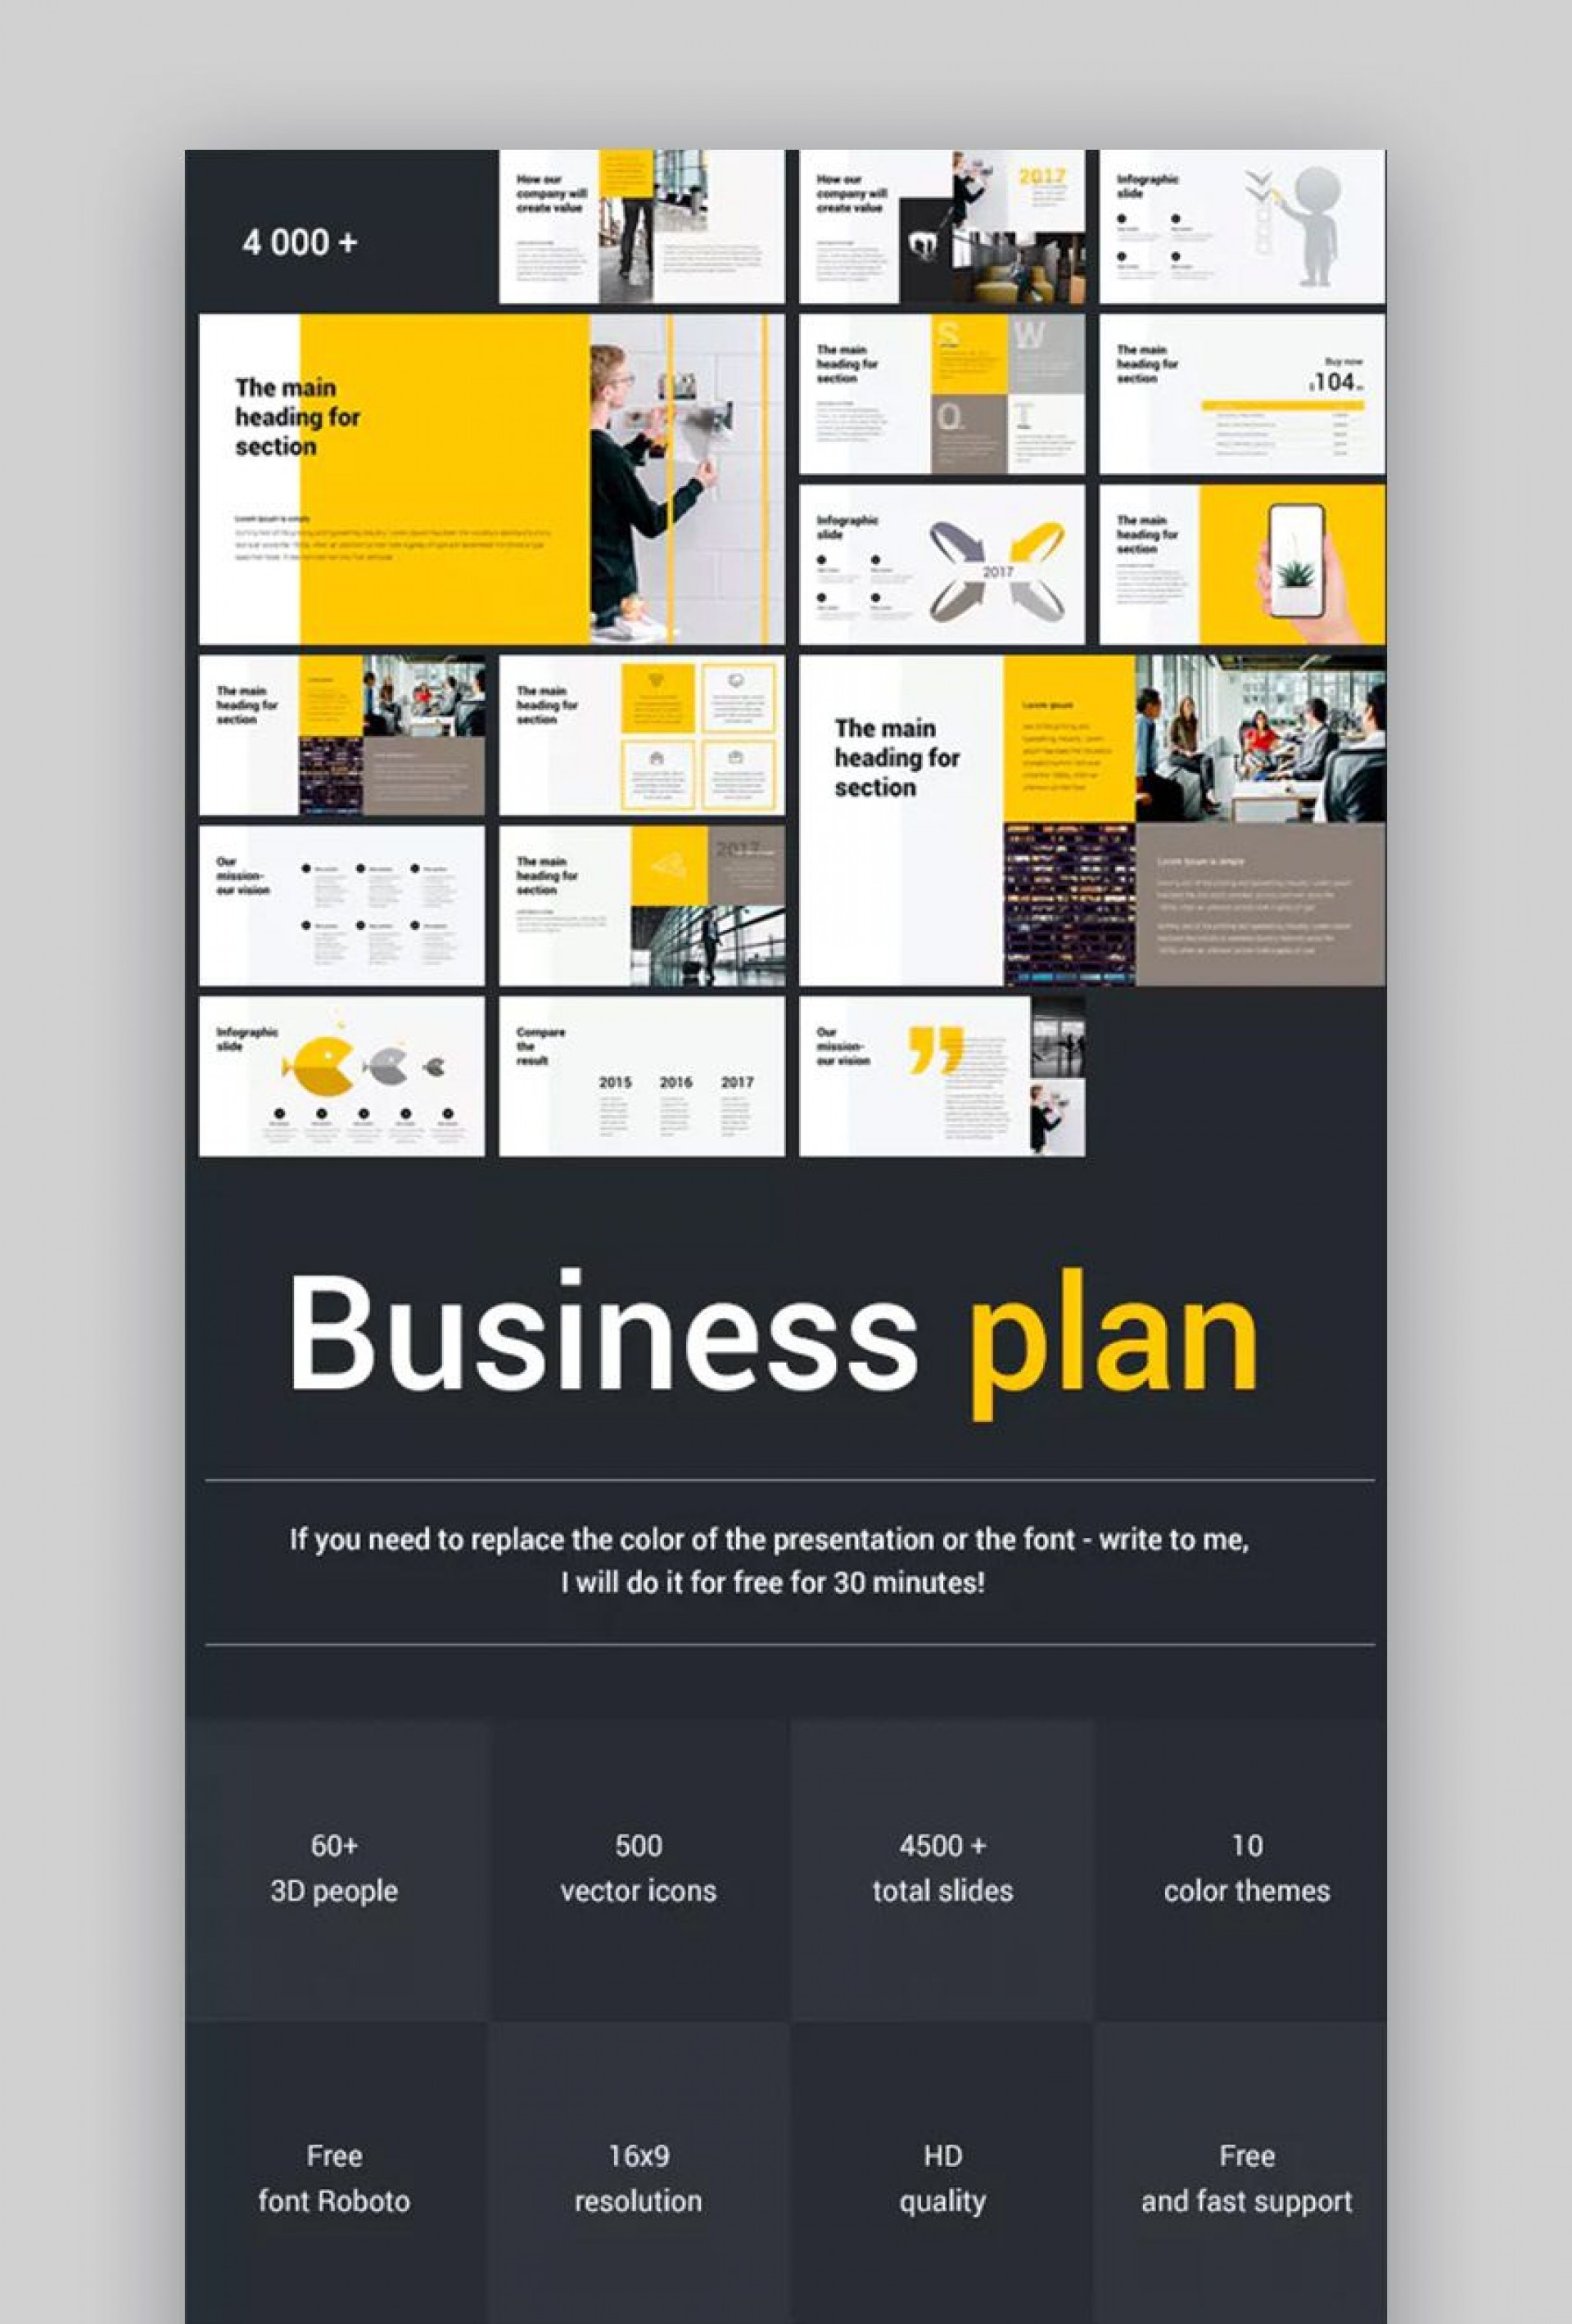 005 Best Startup Busines Plan Template Ppt Highest Clarity  Free1920